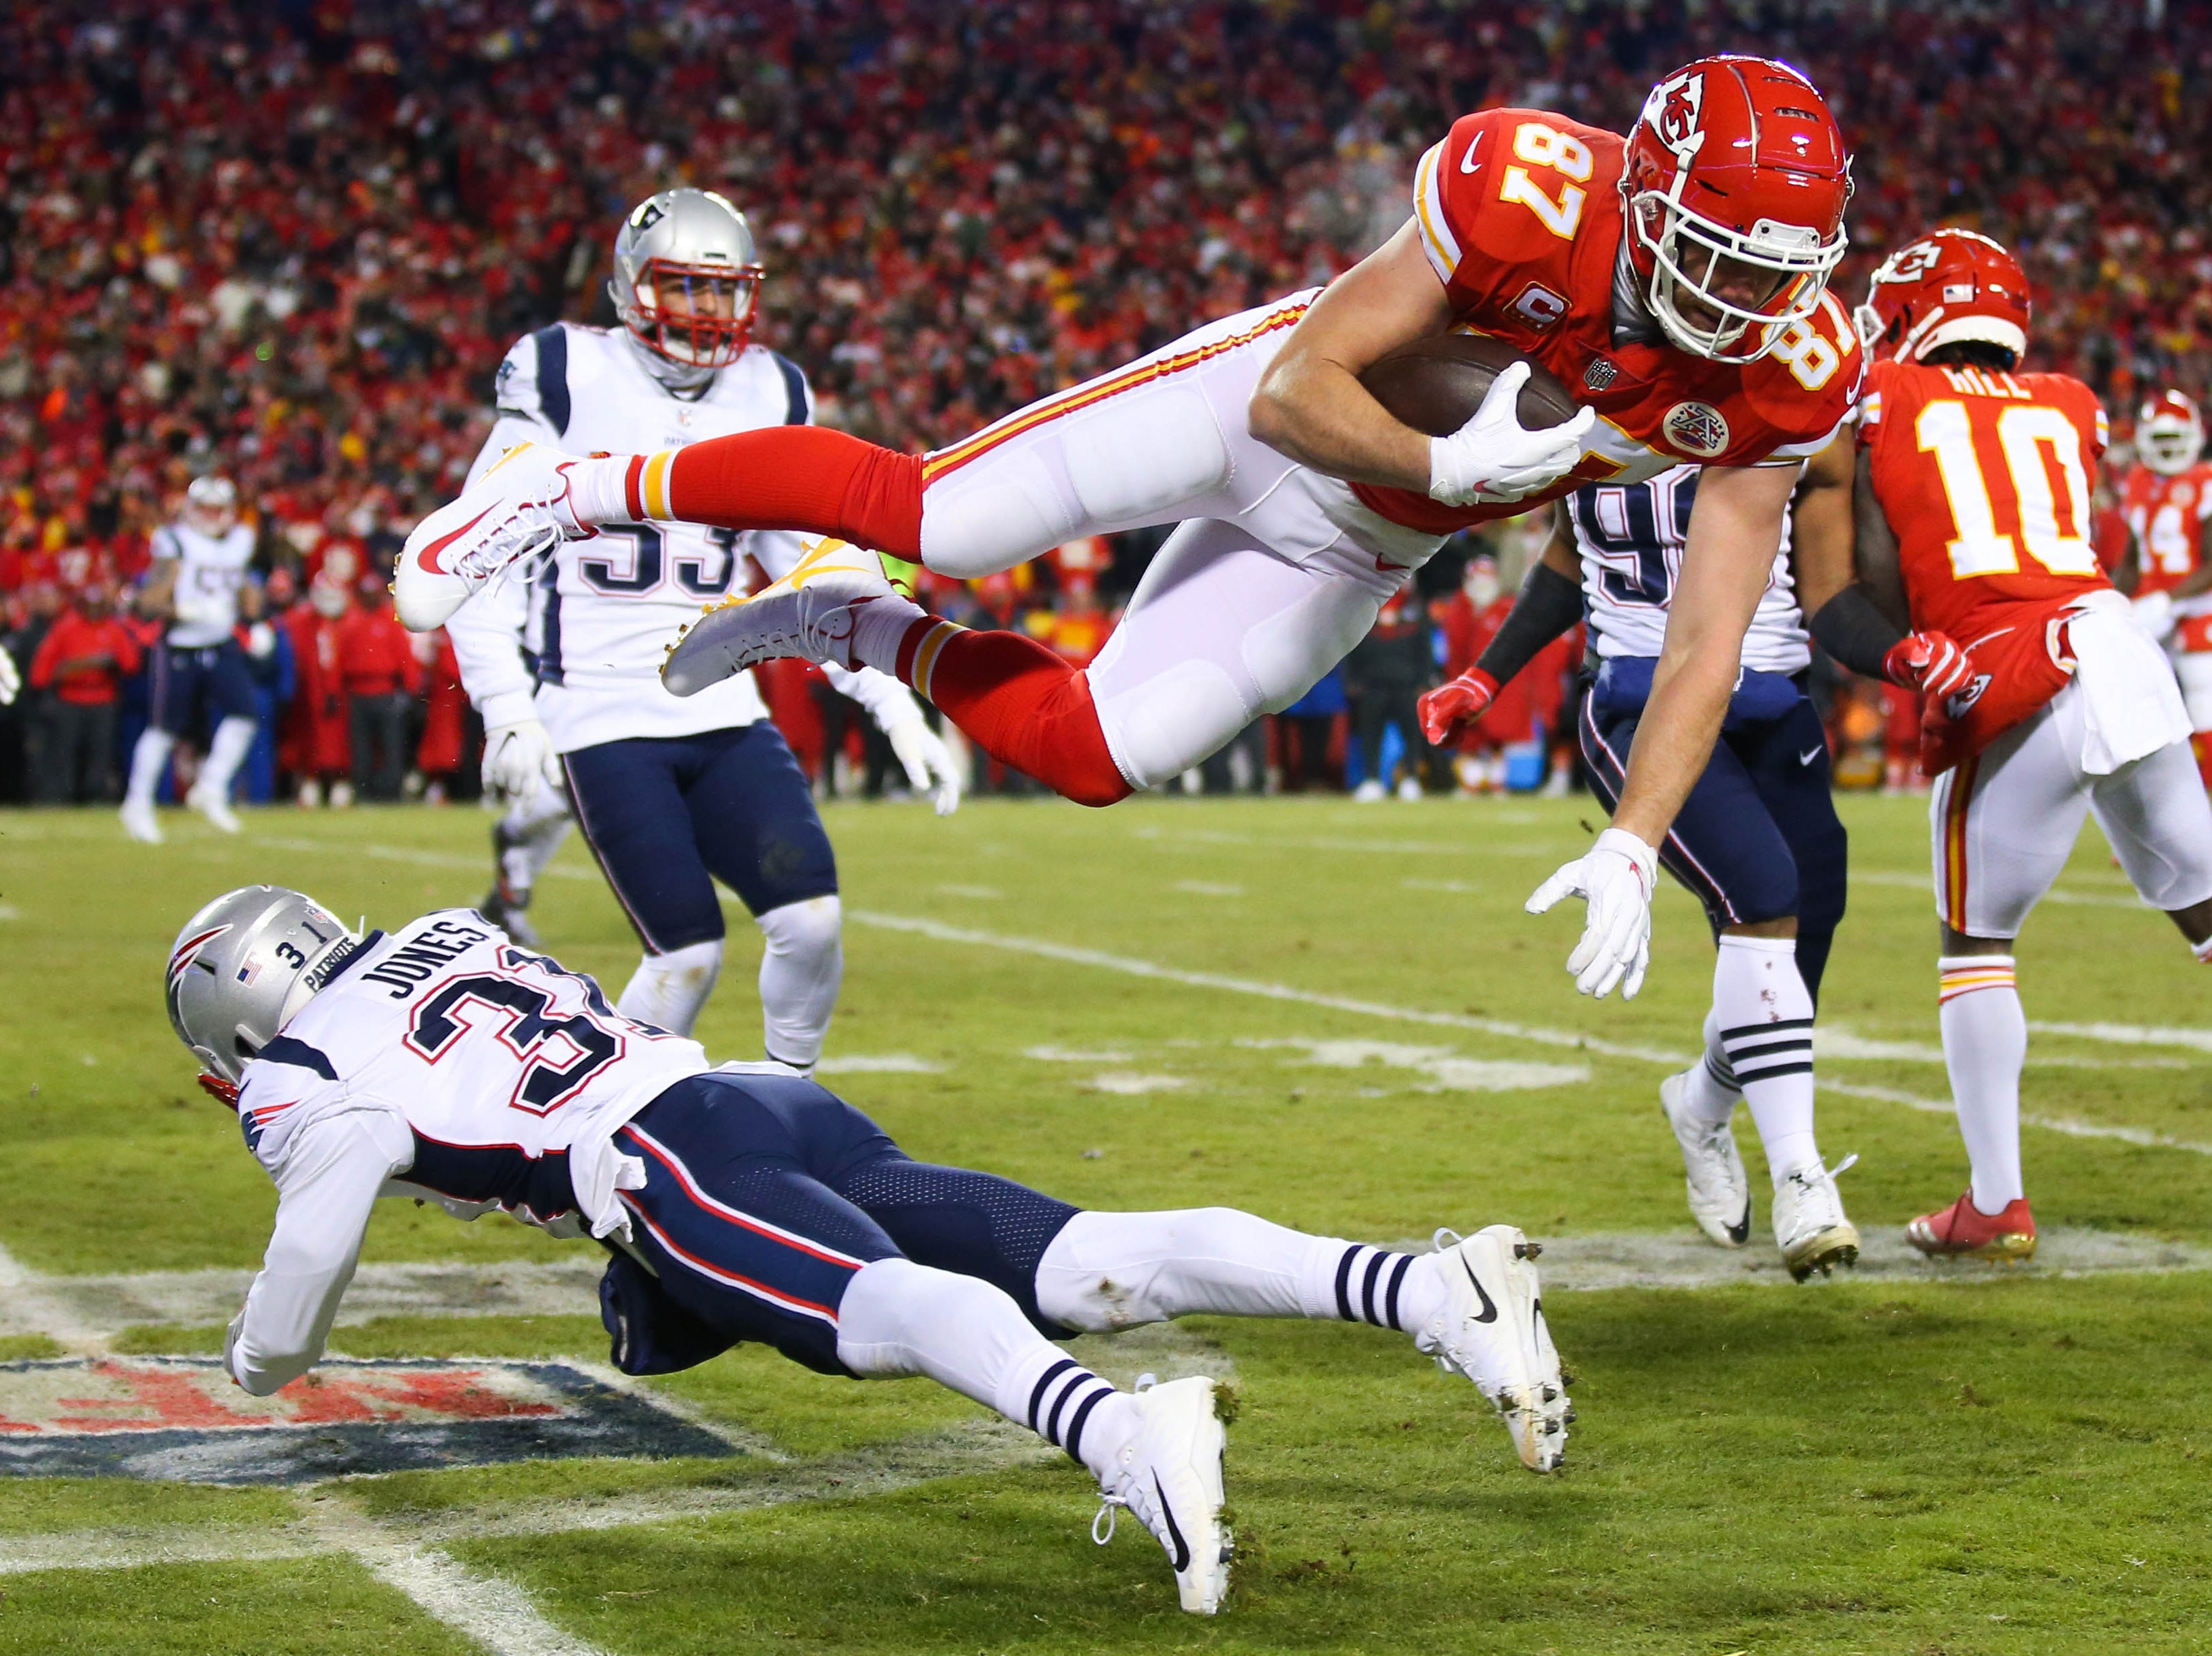 Kansas City Chiefs tight end Travis Kelce (87) leaps over New England Patriots defensive back Jonathan Jones (31) during the first half.